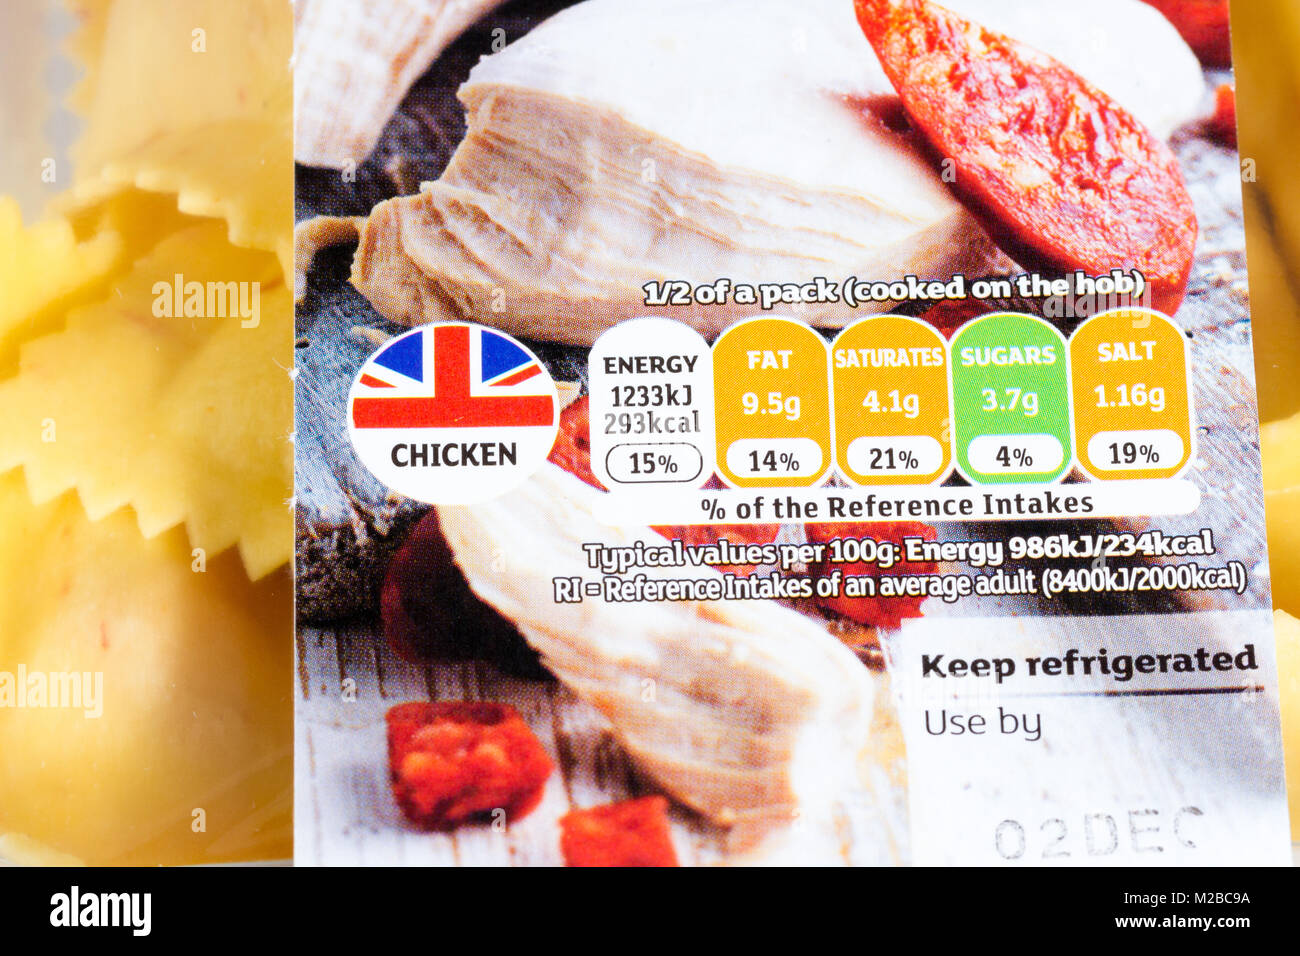 chicken pasta food label close up showing traffic light rating